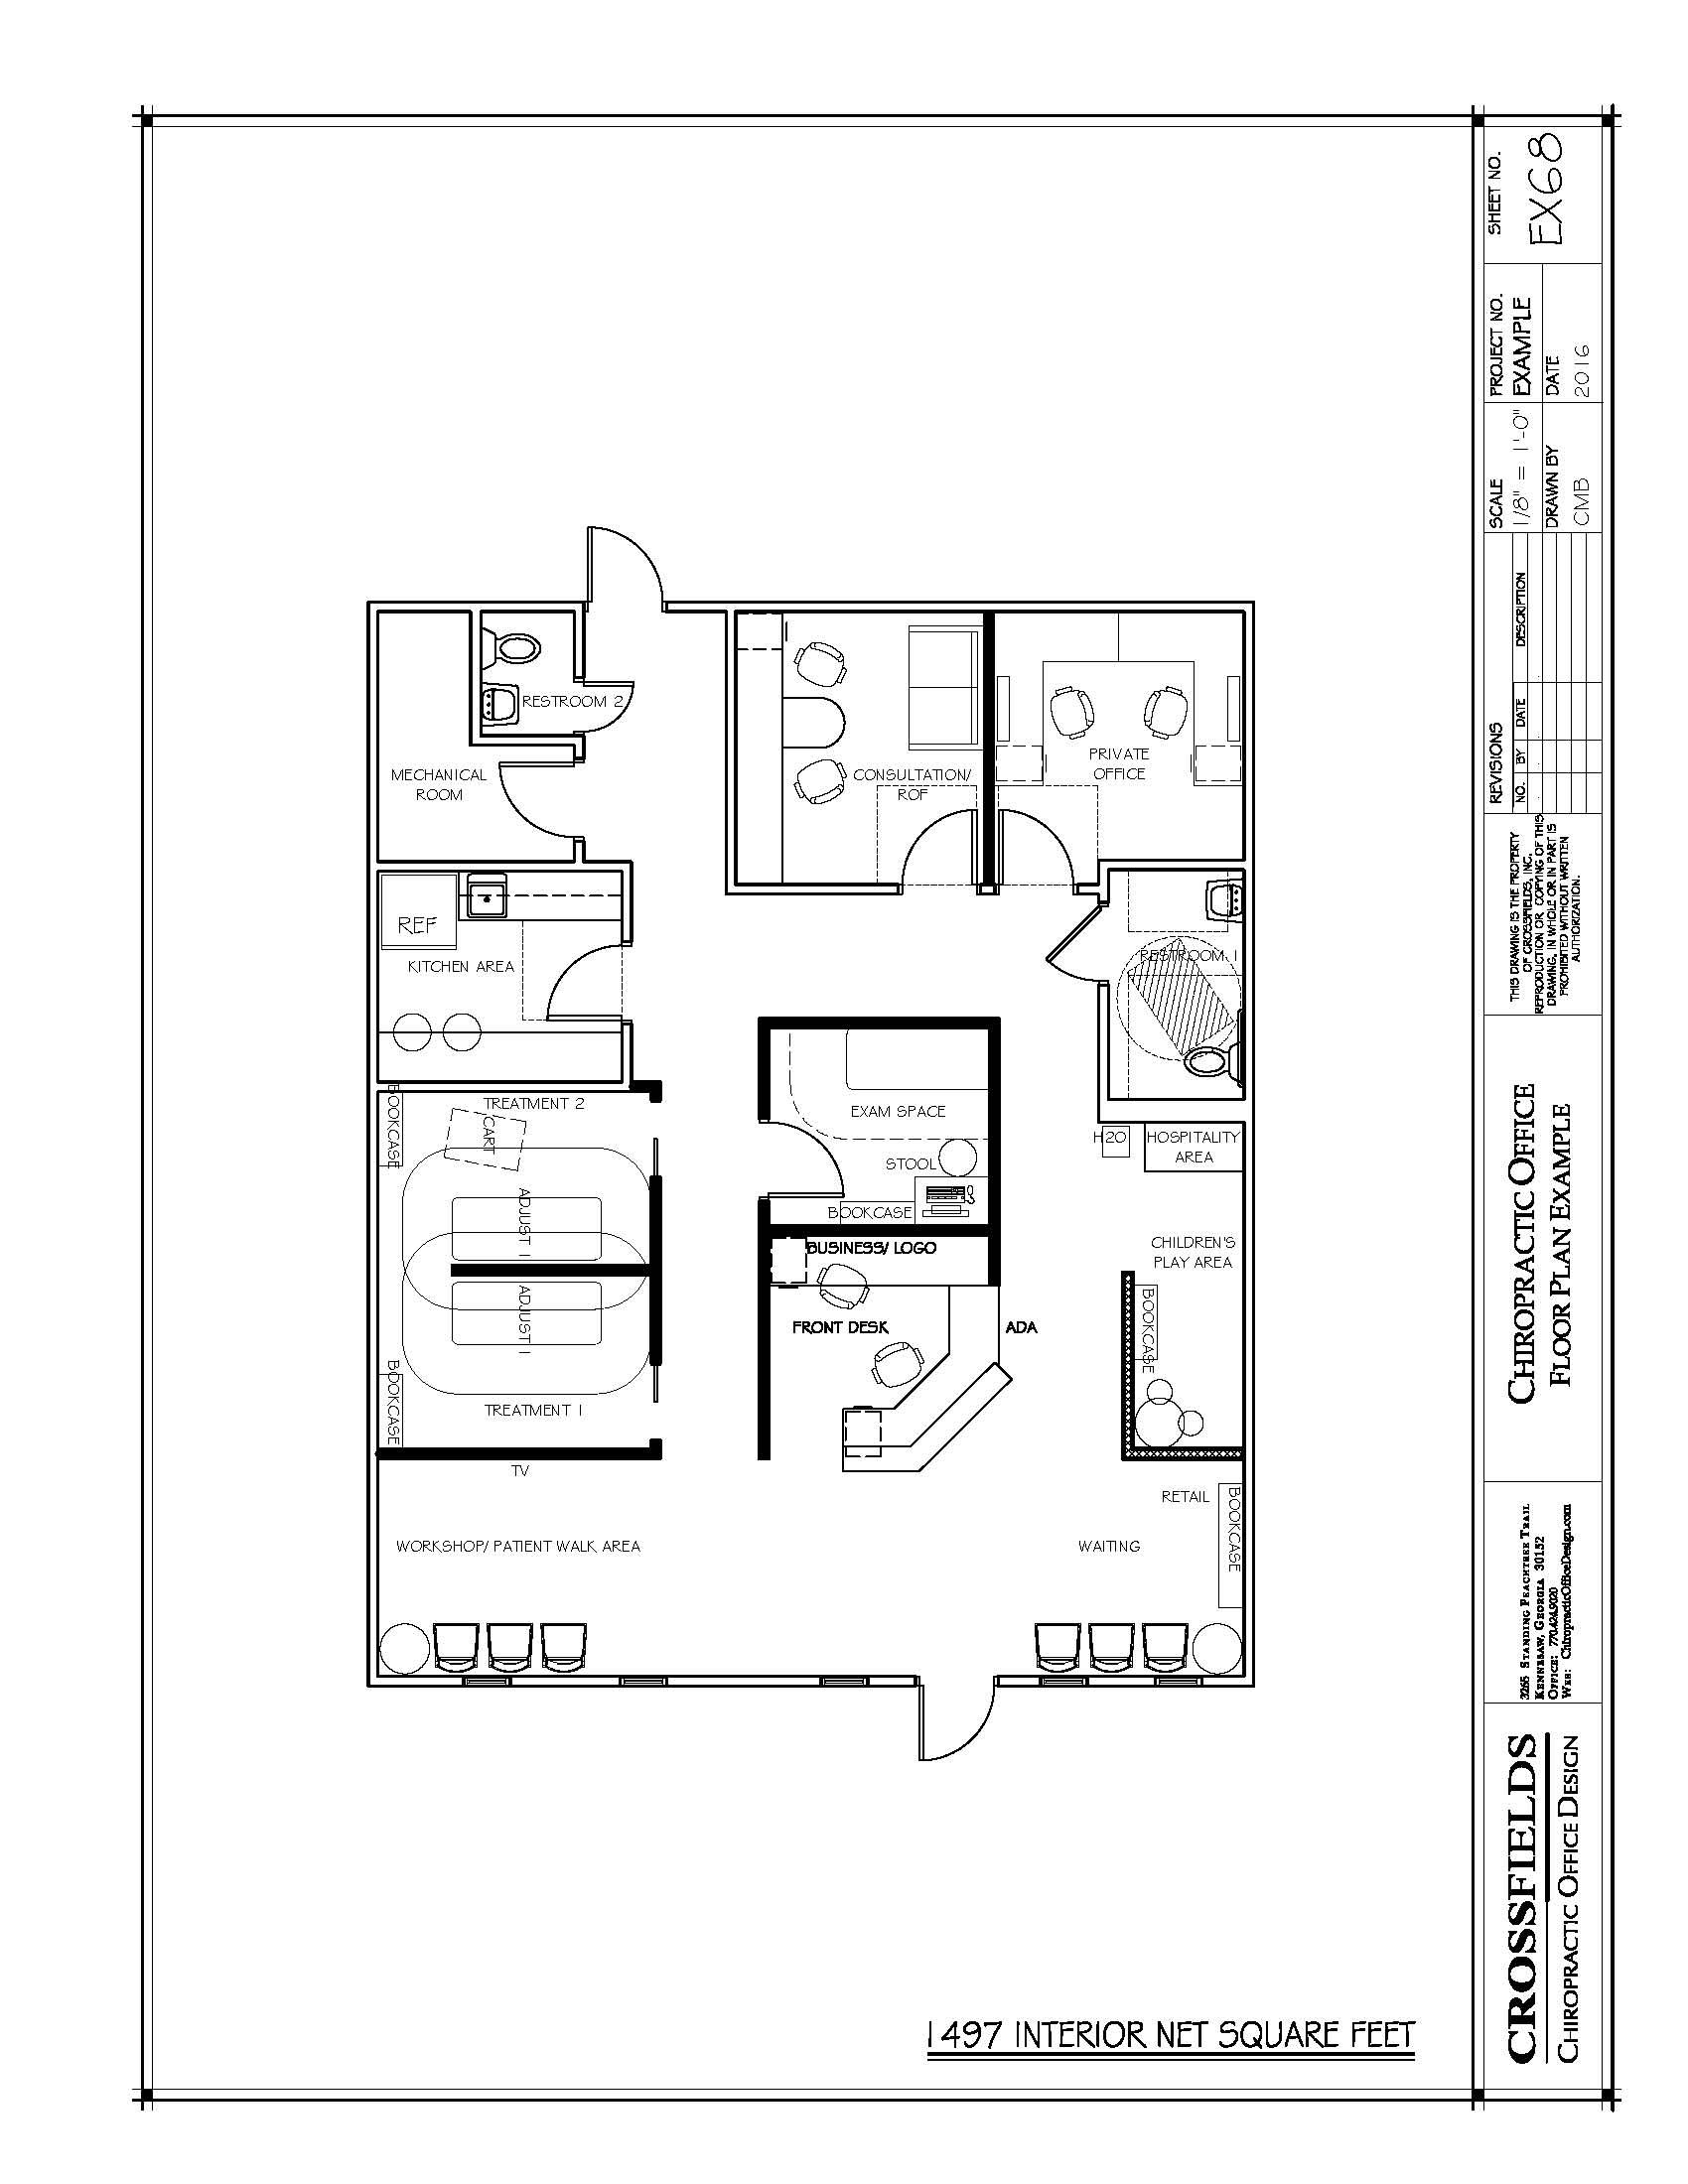 Office Floor Plan Samples. Best Fresh Floor Plan Examples